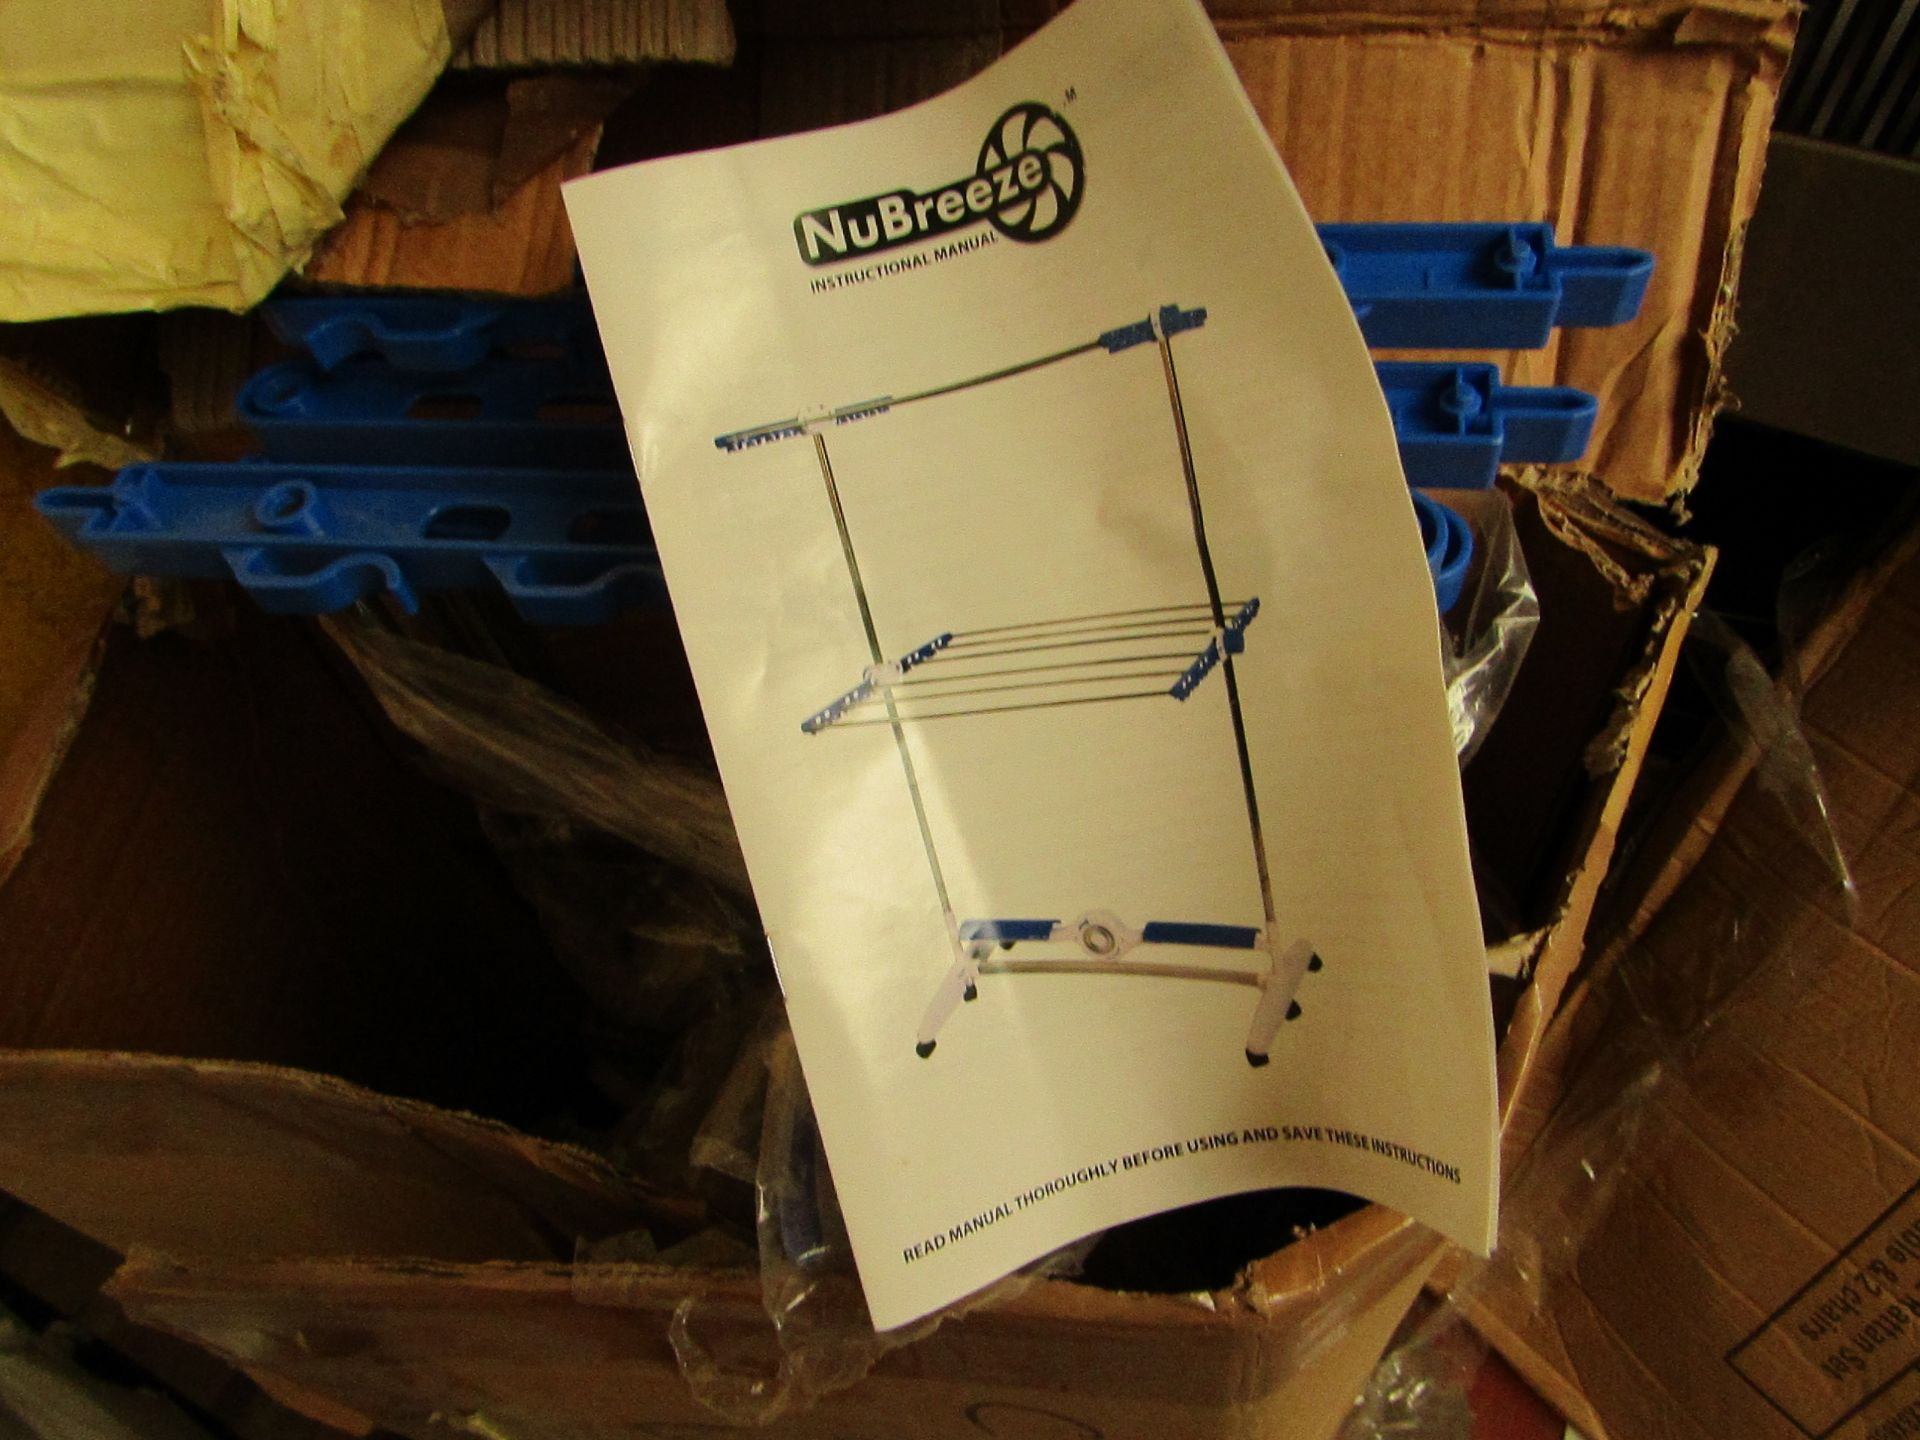 Lot 235 - | 1X | NUBREEZE DRYING SYSTEM | UNCHECKED AND BOXED | NO ONLINE RE-SALE | SKU C5060541513952 |